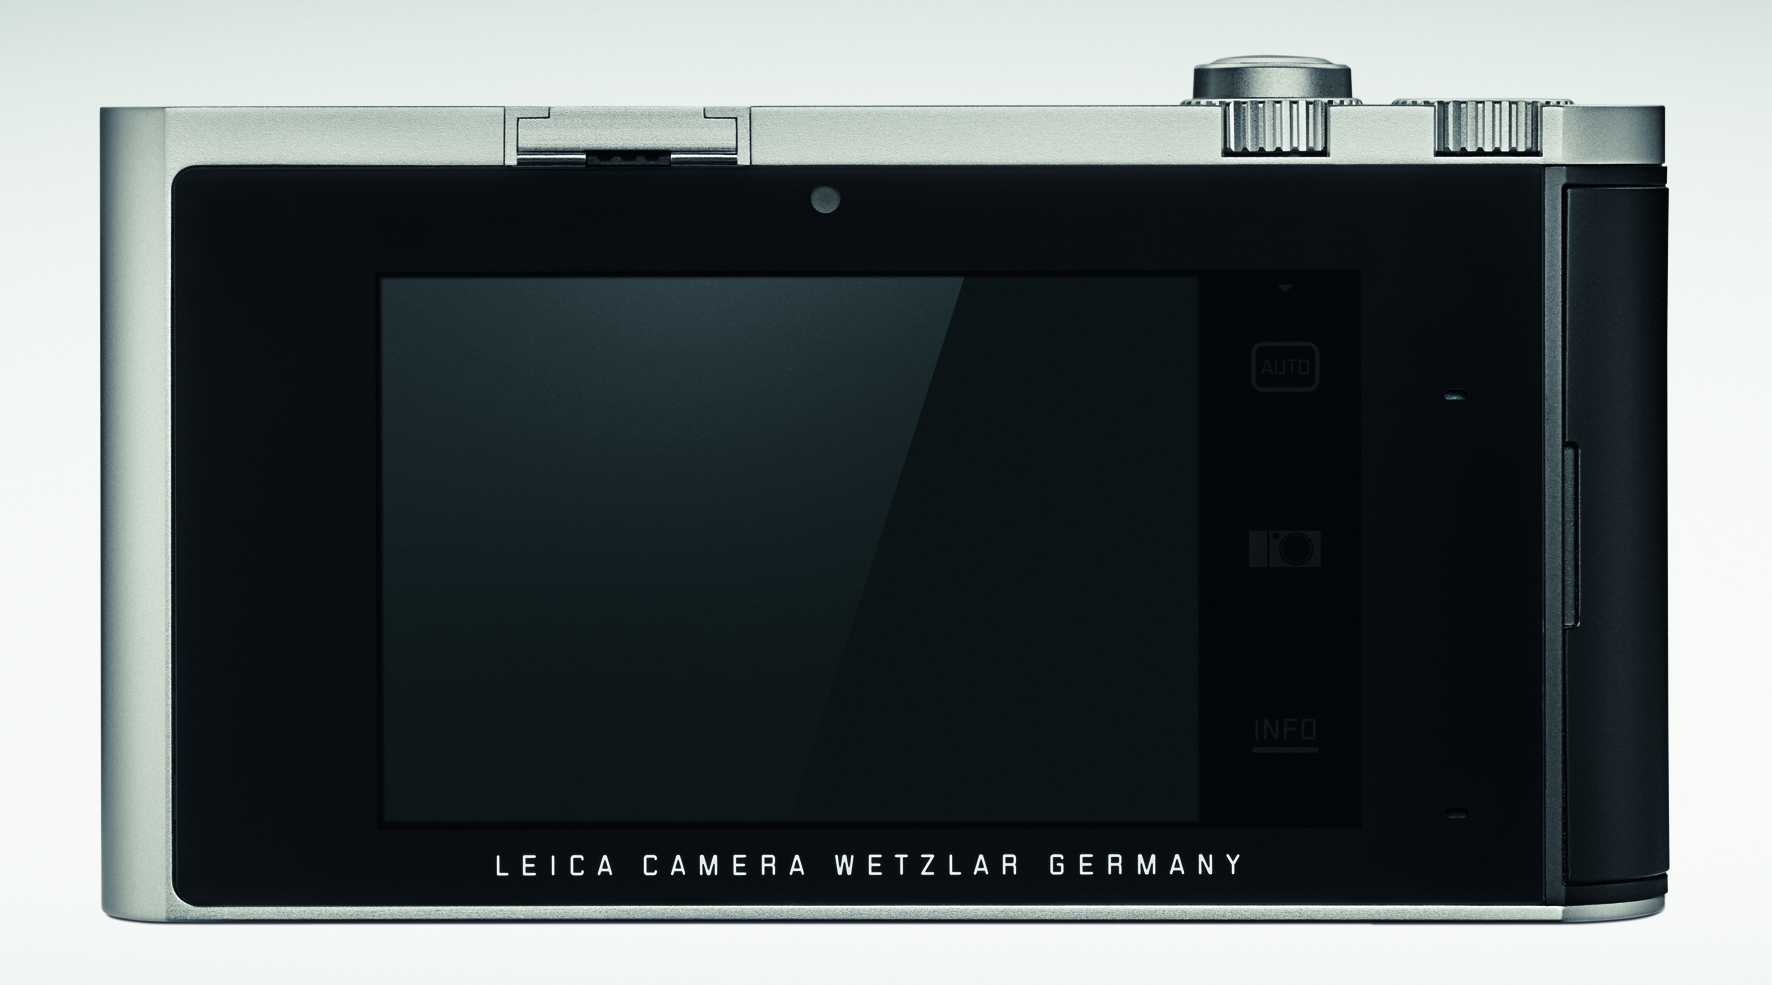 The large 3.7inch LCD display